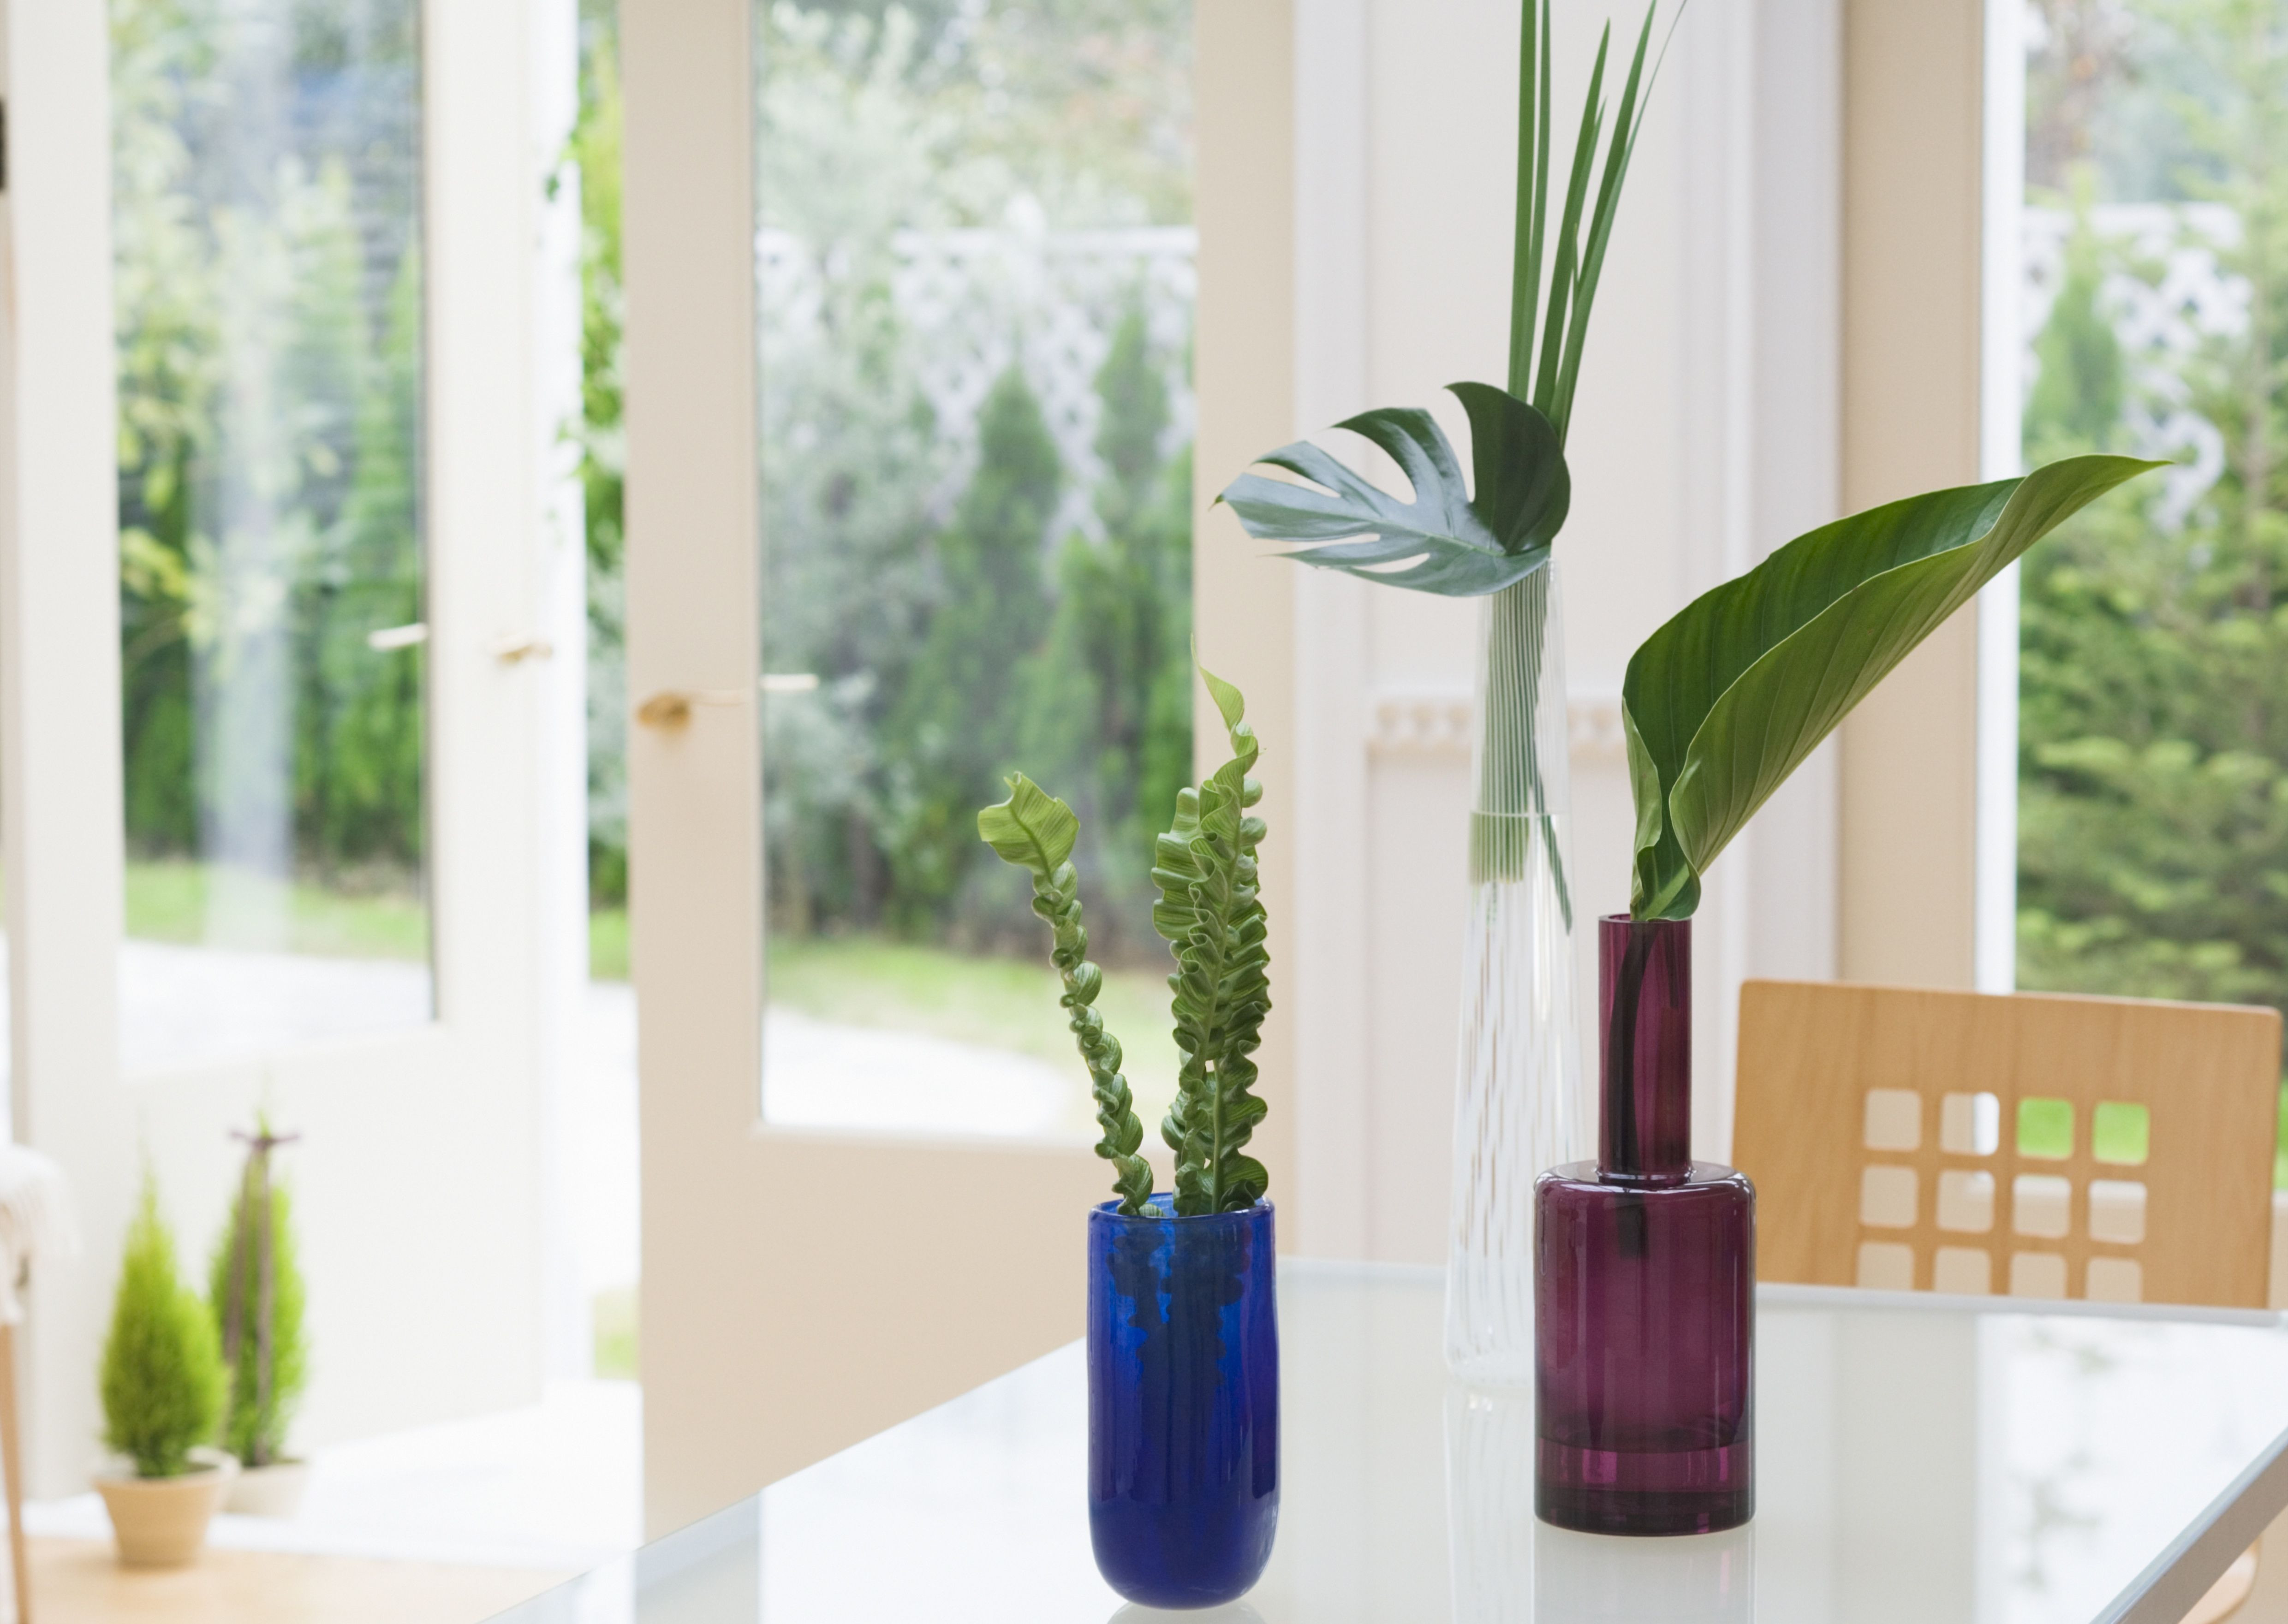 15 Popular 3 Feet Tall Vases 2021 free download 3 feet tall vases of tips for growing philodendrons as houseplants regarding room interior 77658878 5b7098a14cedfd0025521ee6